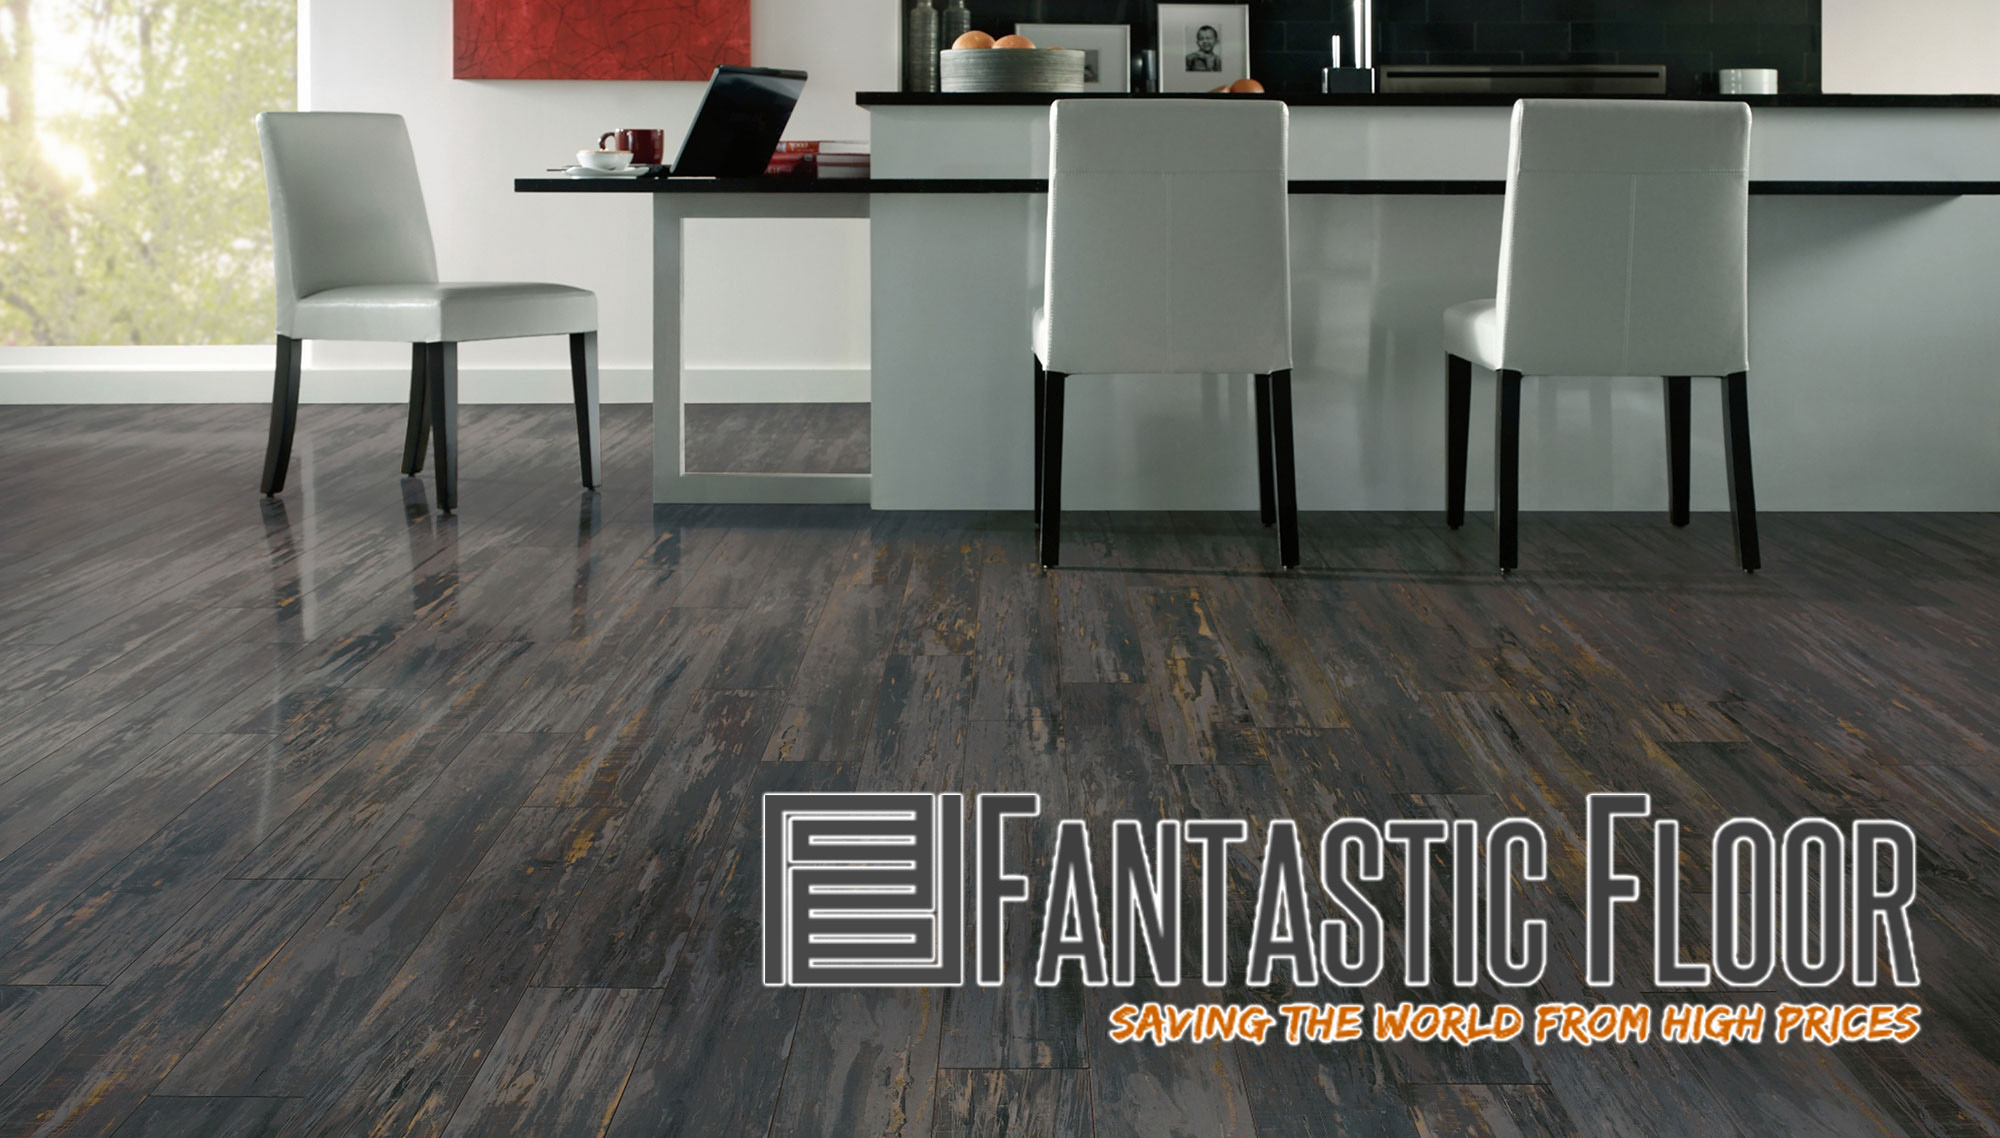 The Fantastic Floor - Vancouver image 5